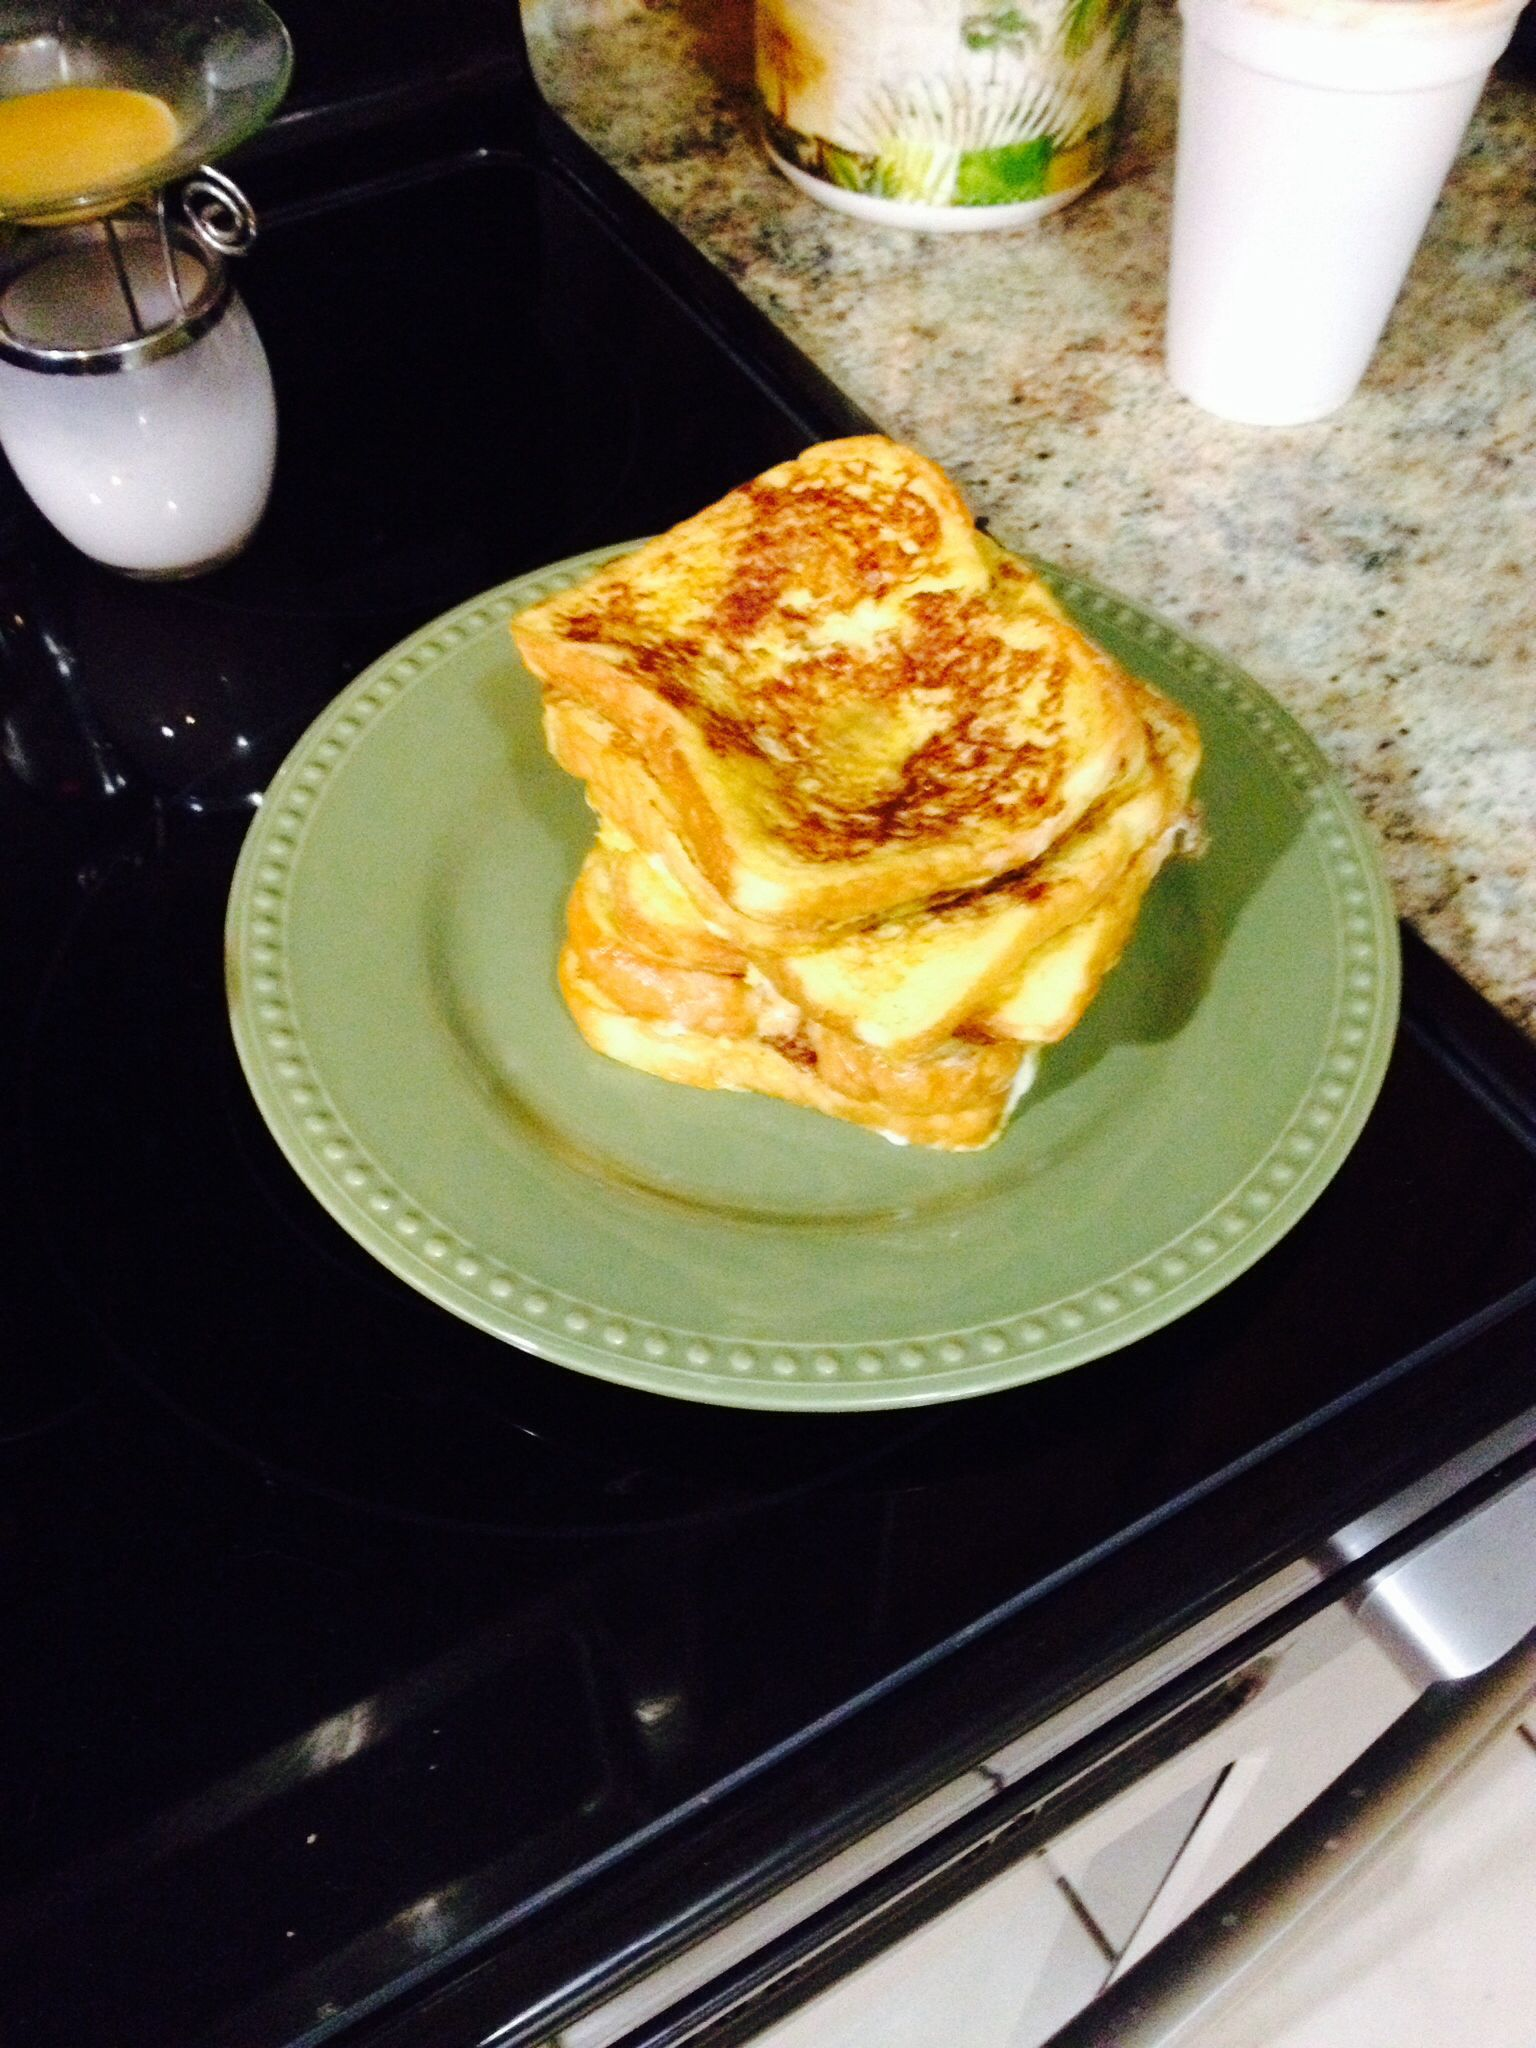 Ummm someone made french toast for the loved ones this morning#breakfast #frenchtoast #syrup #cinnamon #yum